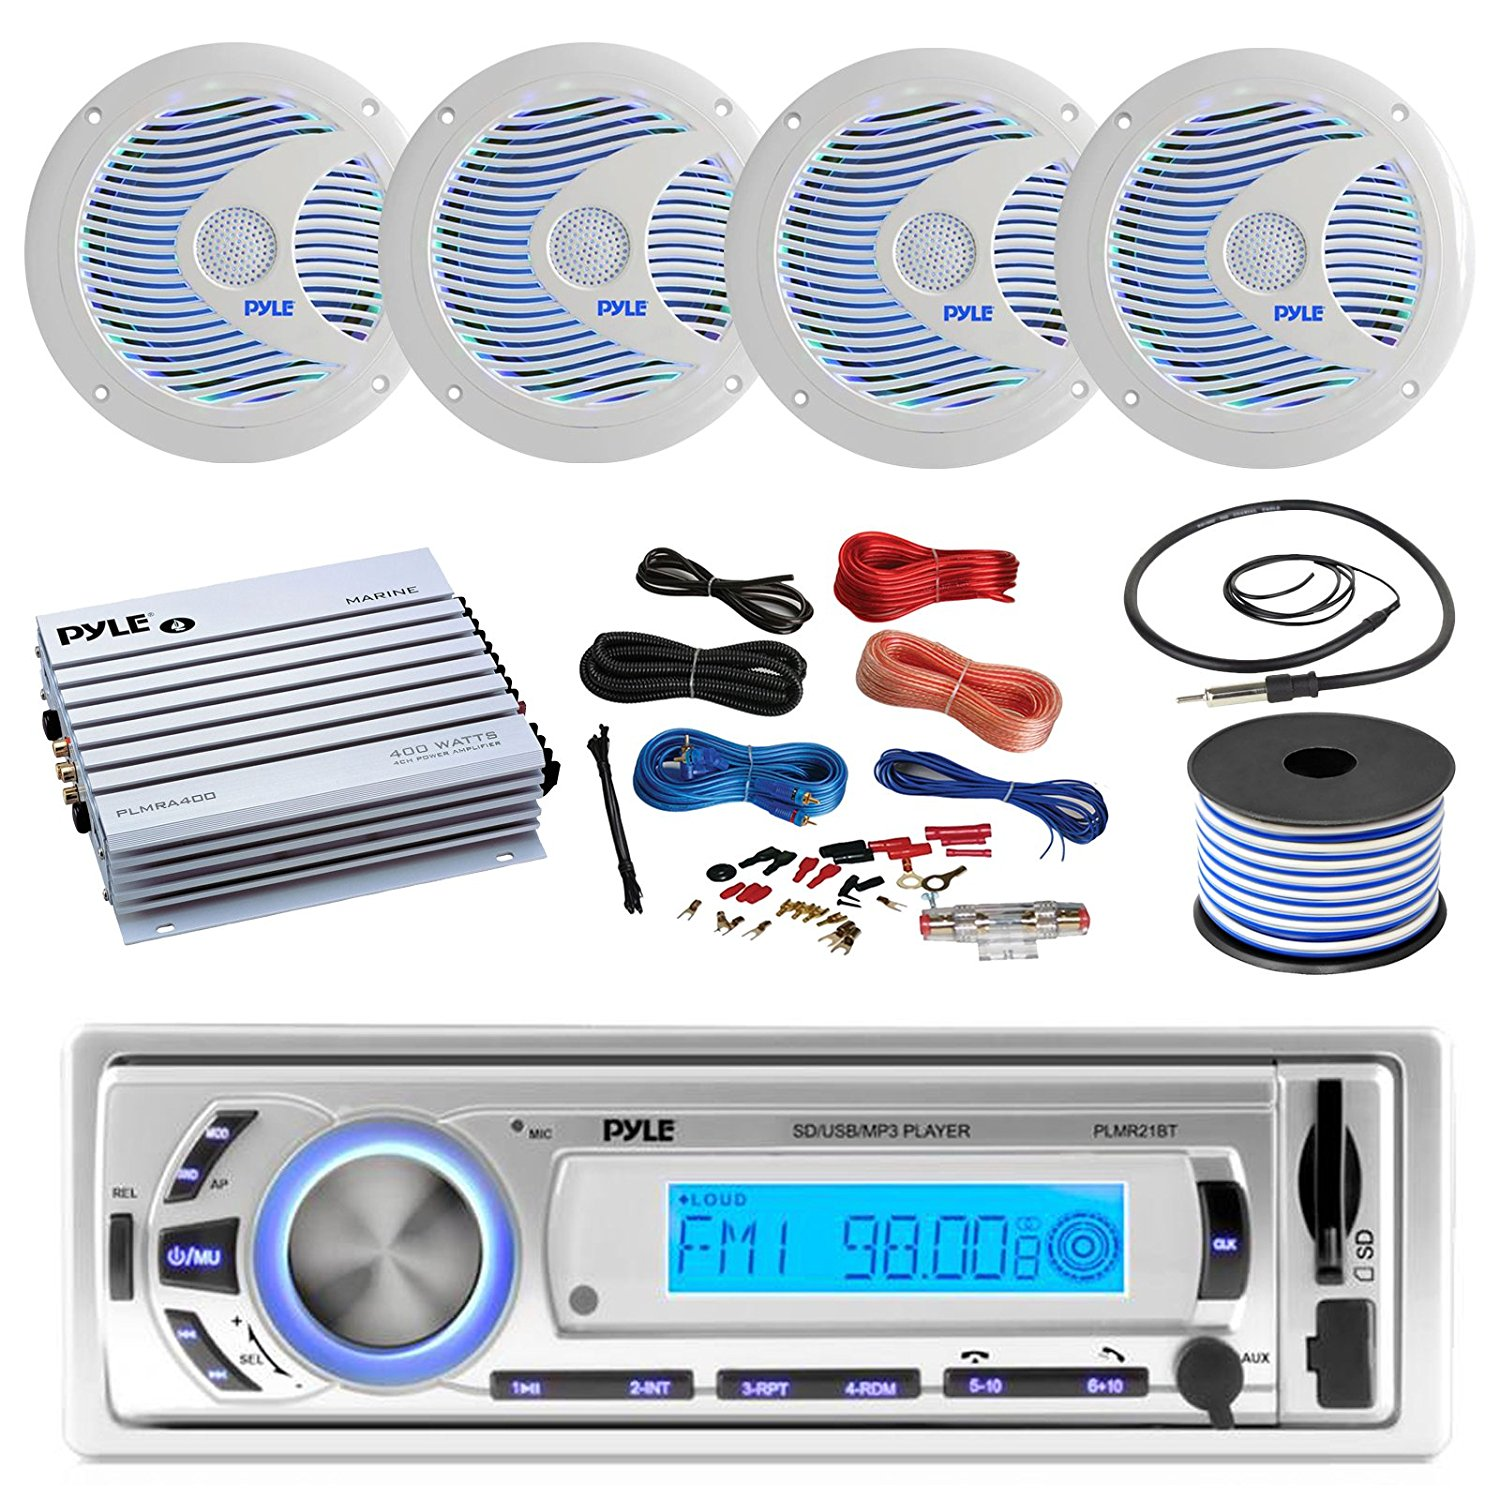 Get Quotations · 16-25' Bay Boat: Pyle Bluetooth Marine USB MP3 Stereo  Receiver, 4